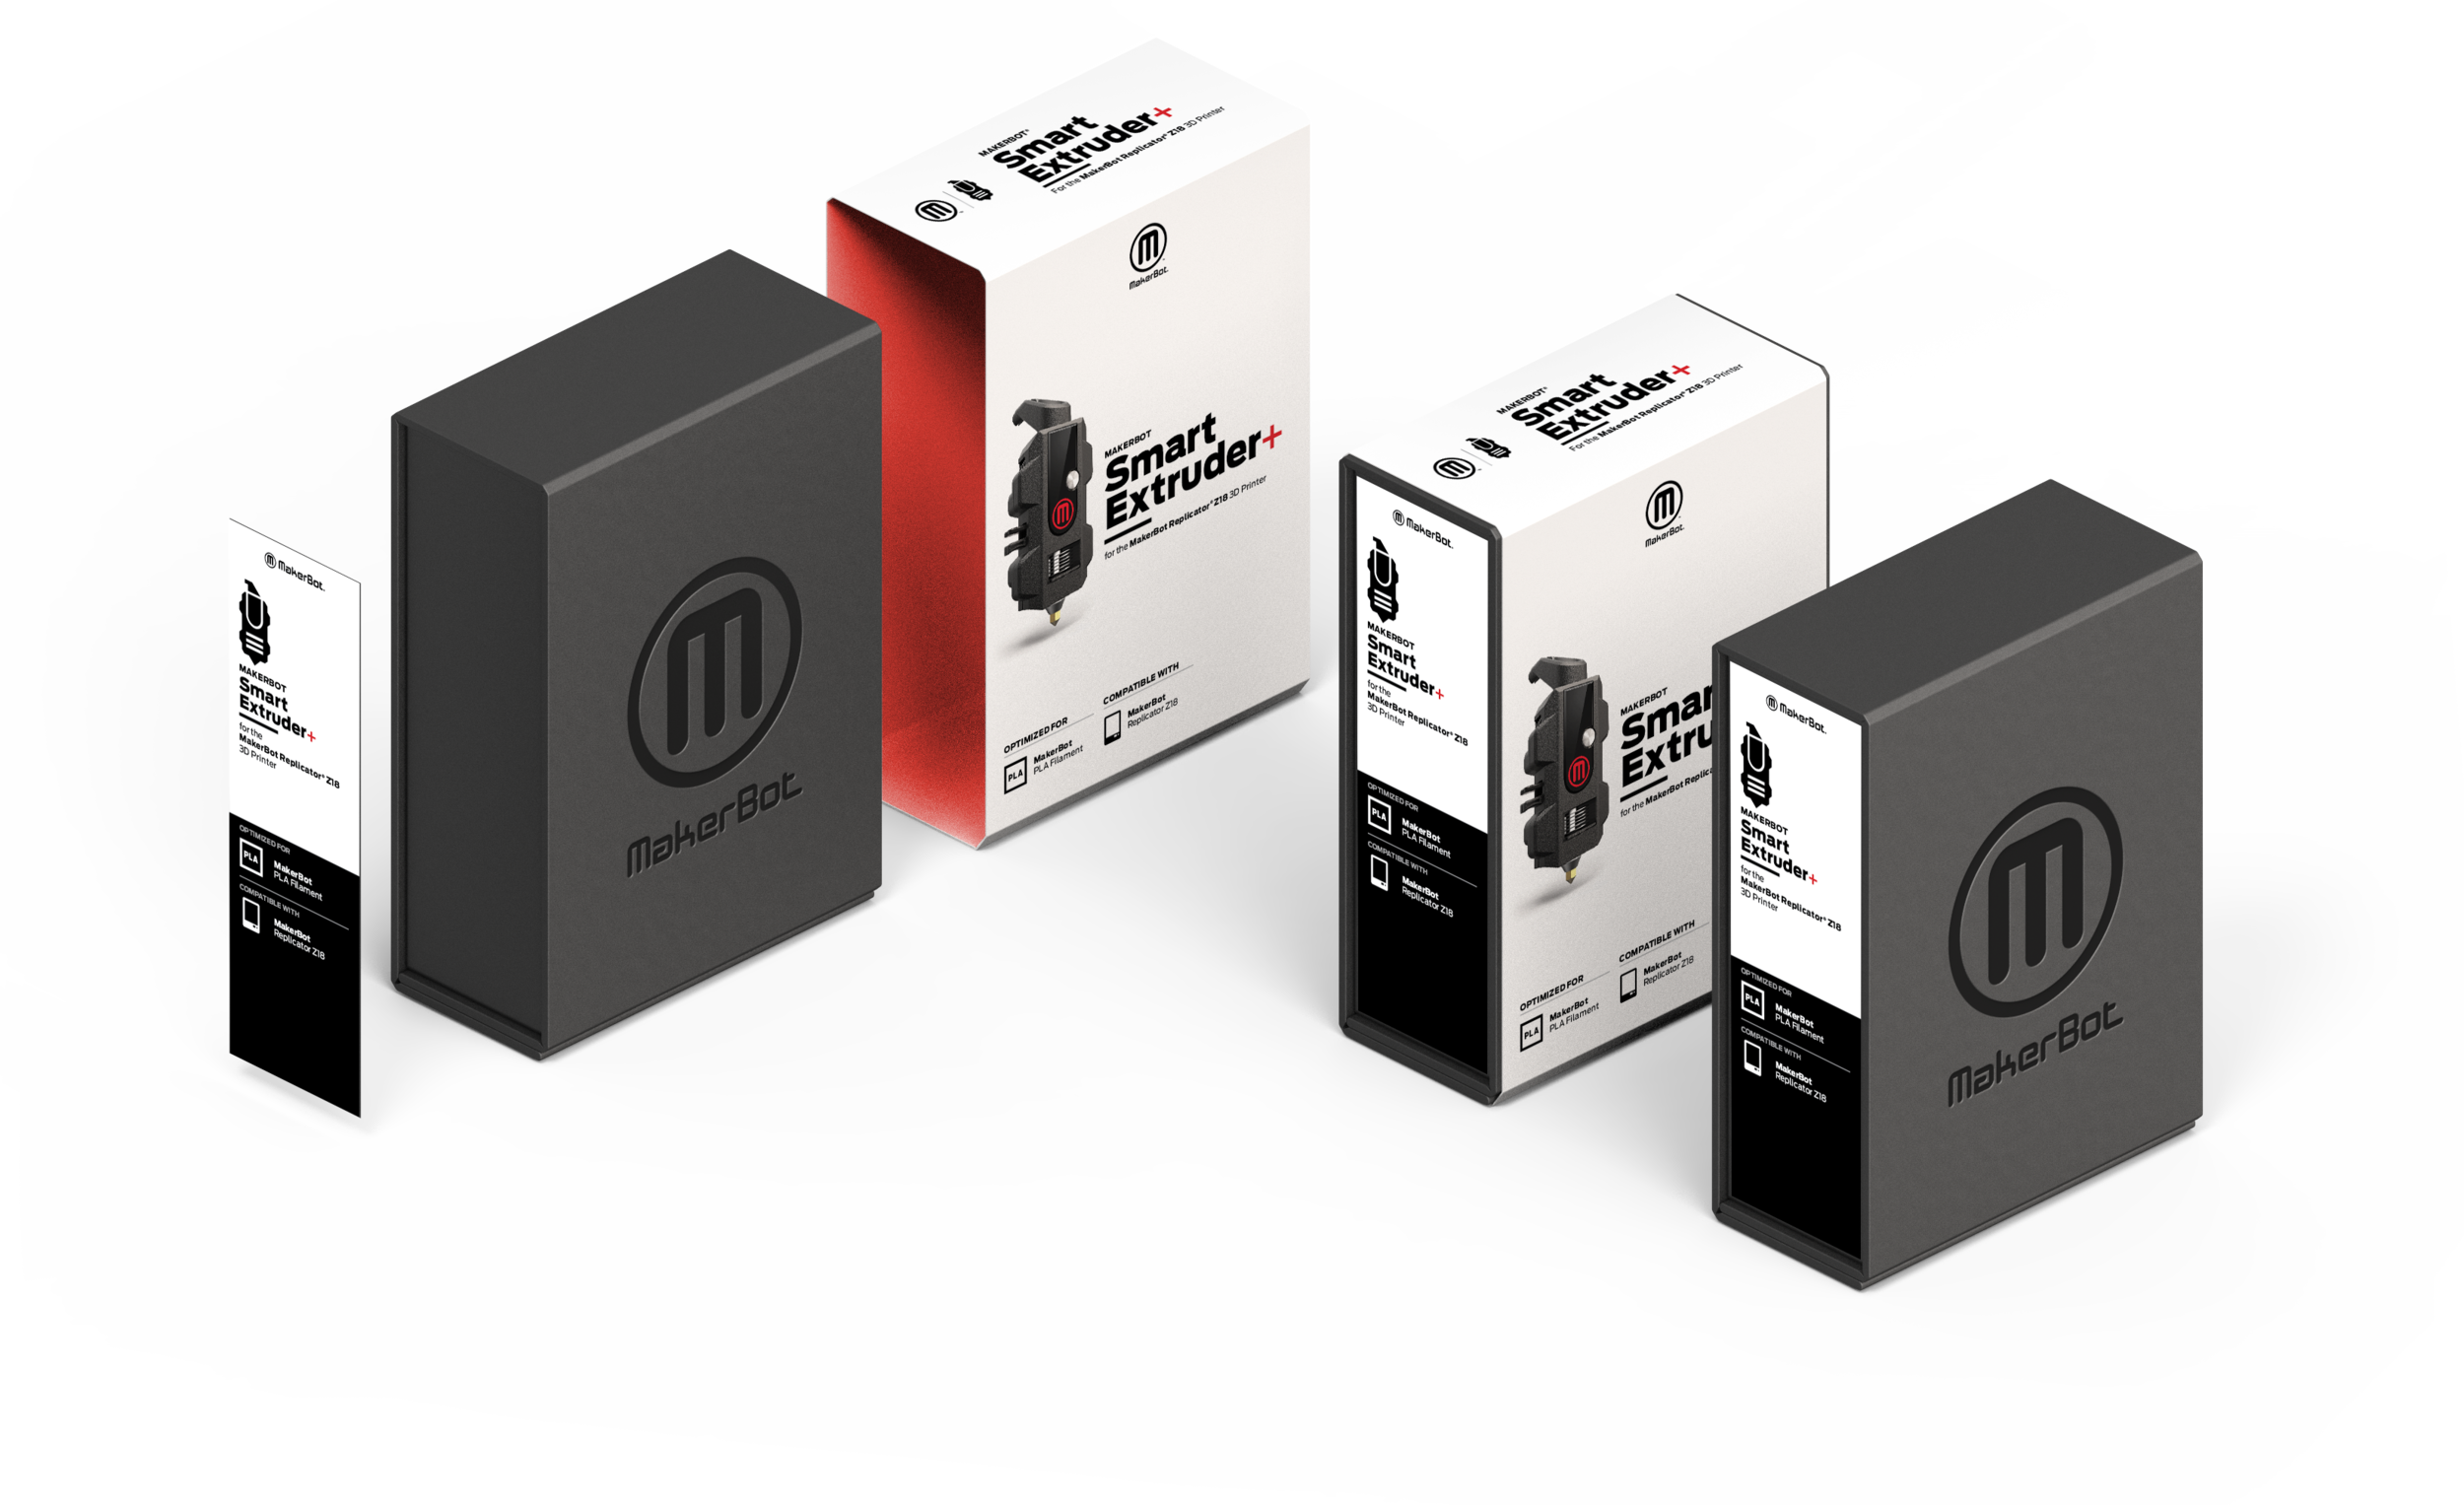 New packaging architecture brough clarity to information and added value pre and post sale